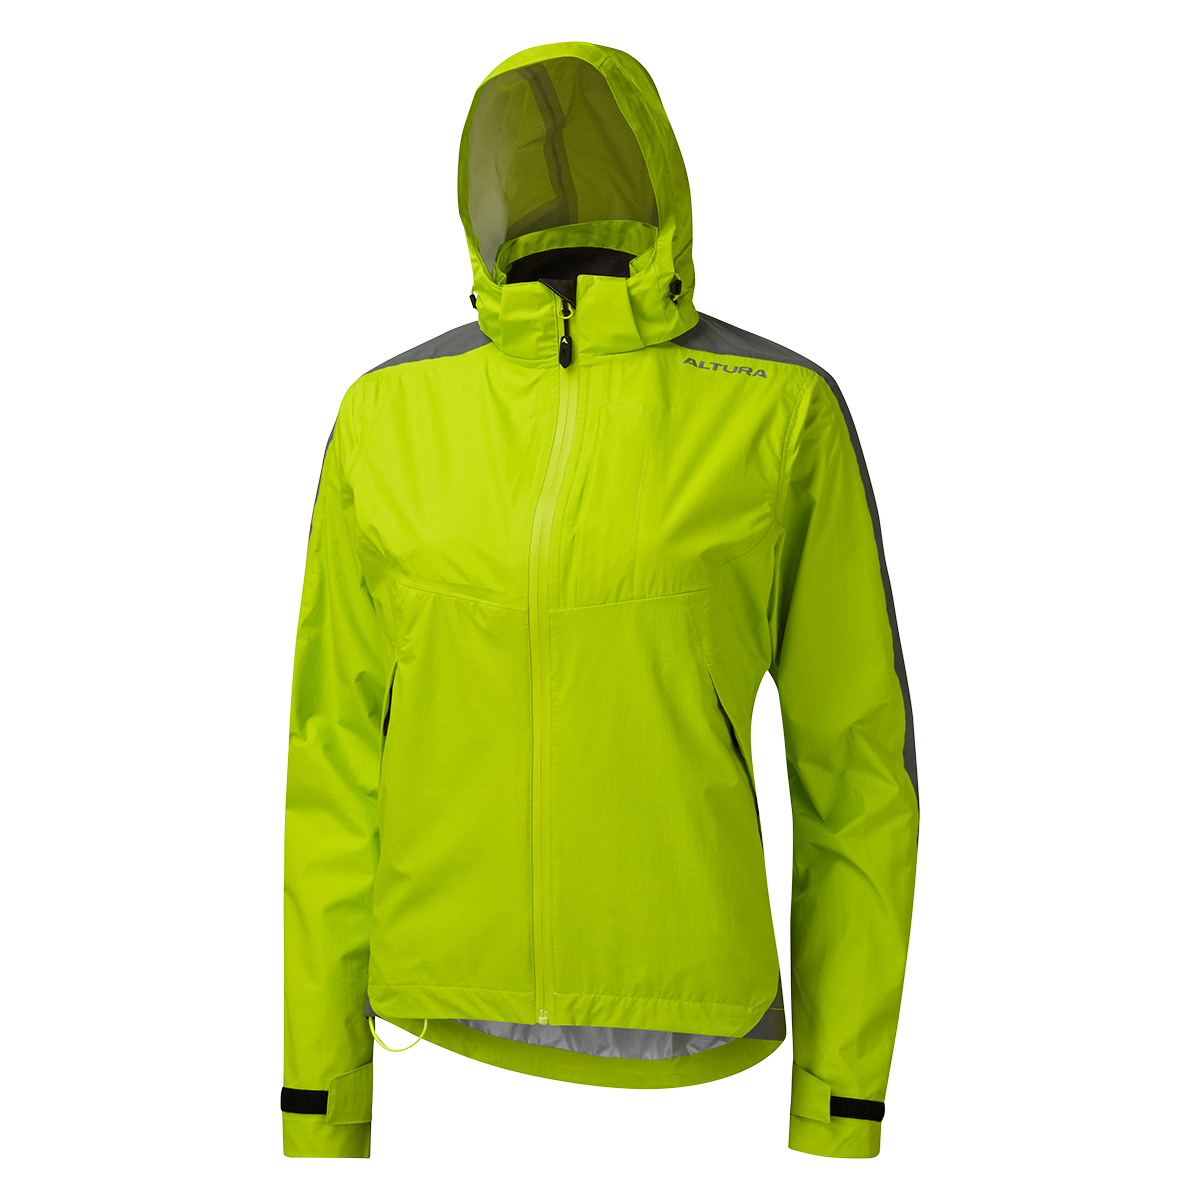 Nightvision Typhoon Women's Waterproof Jacket